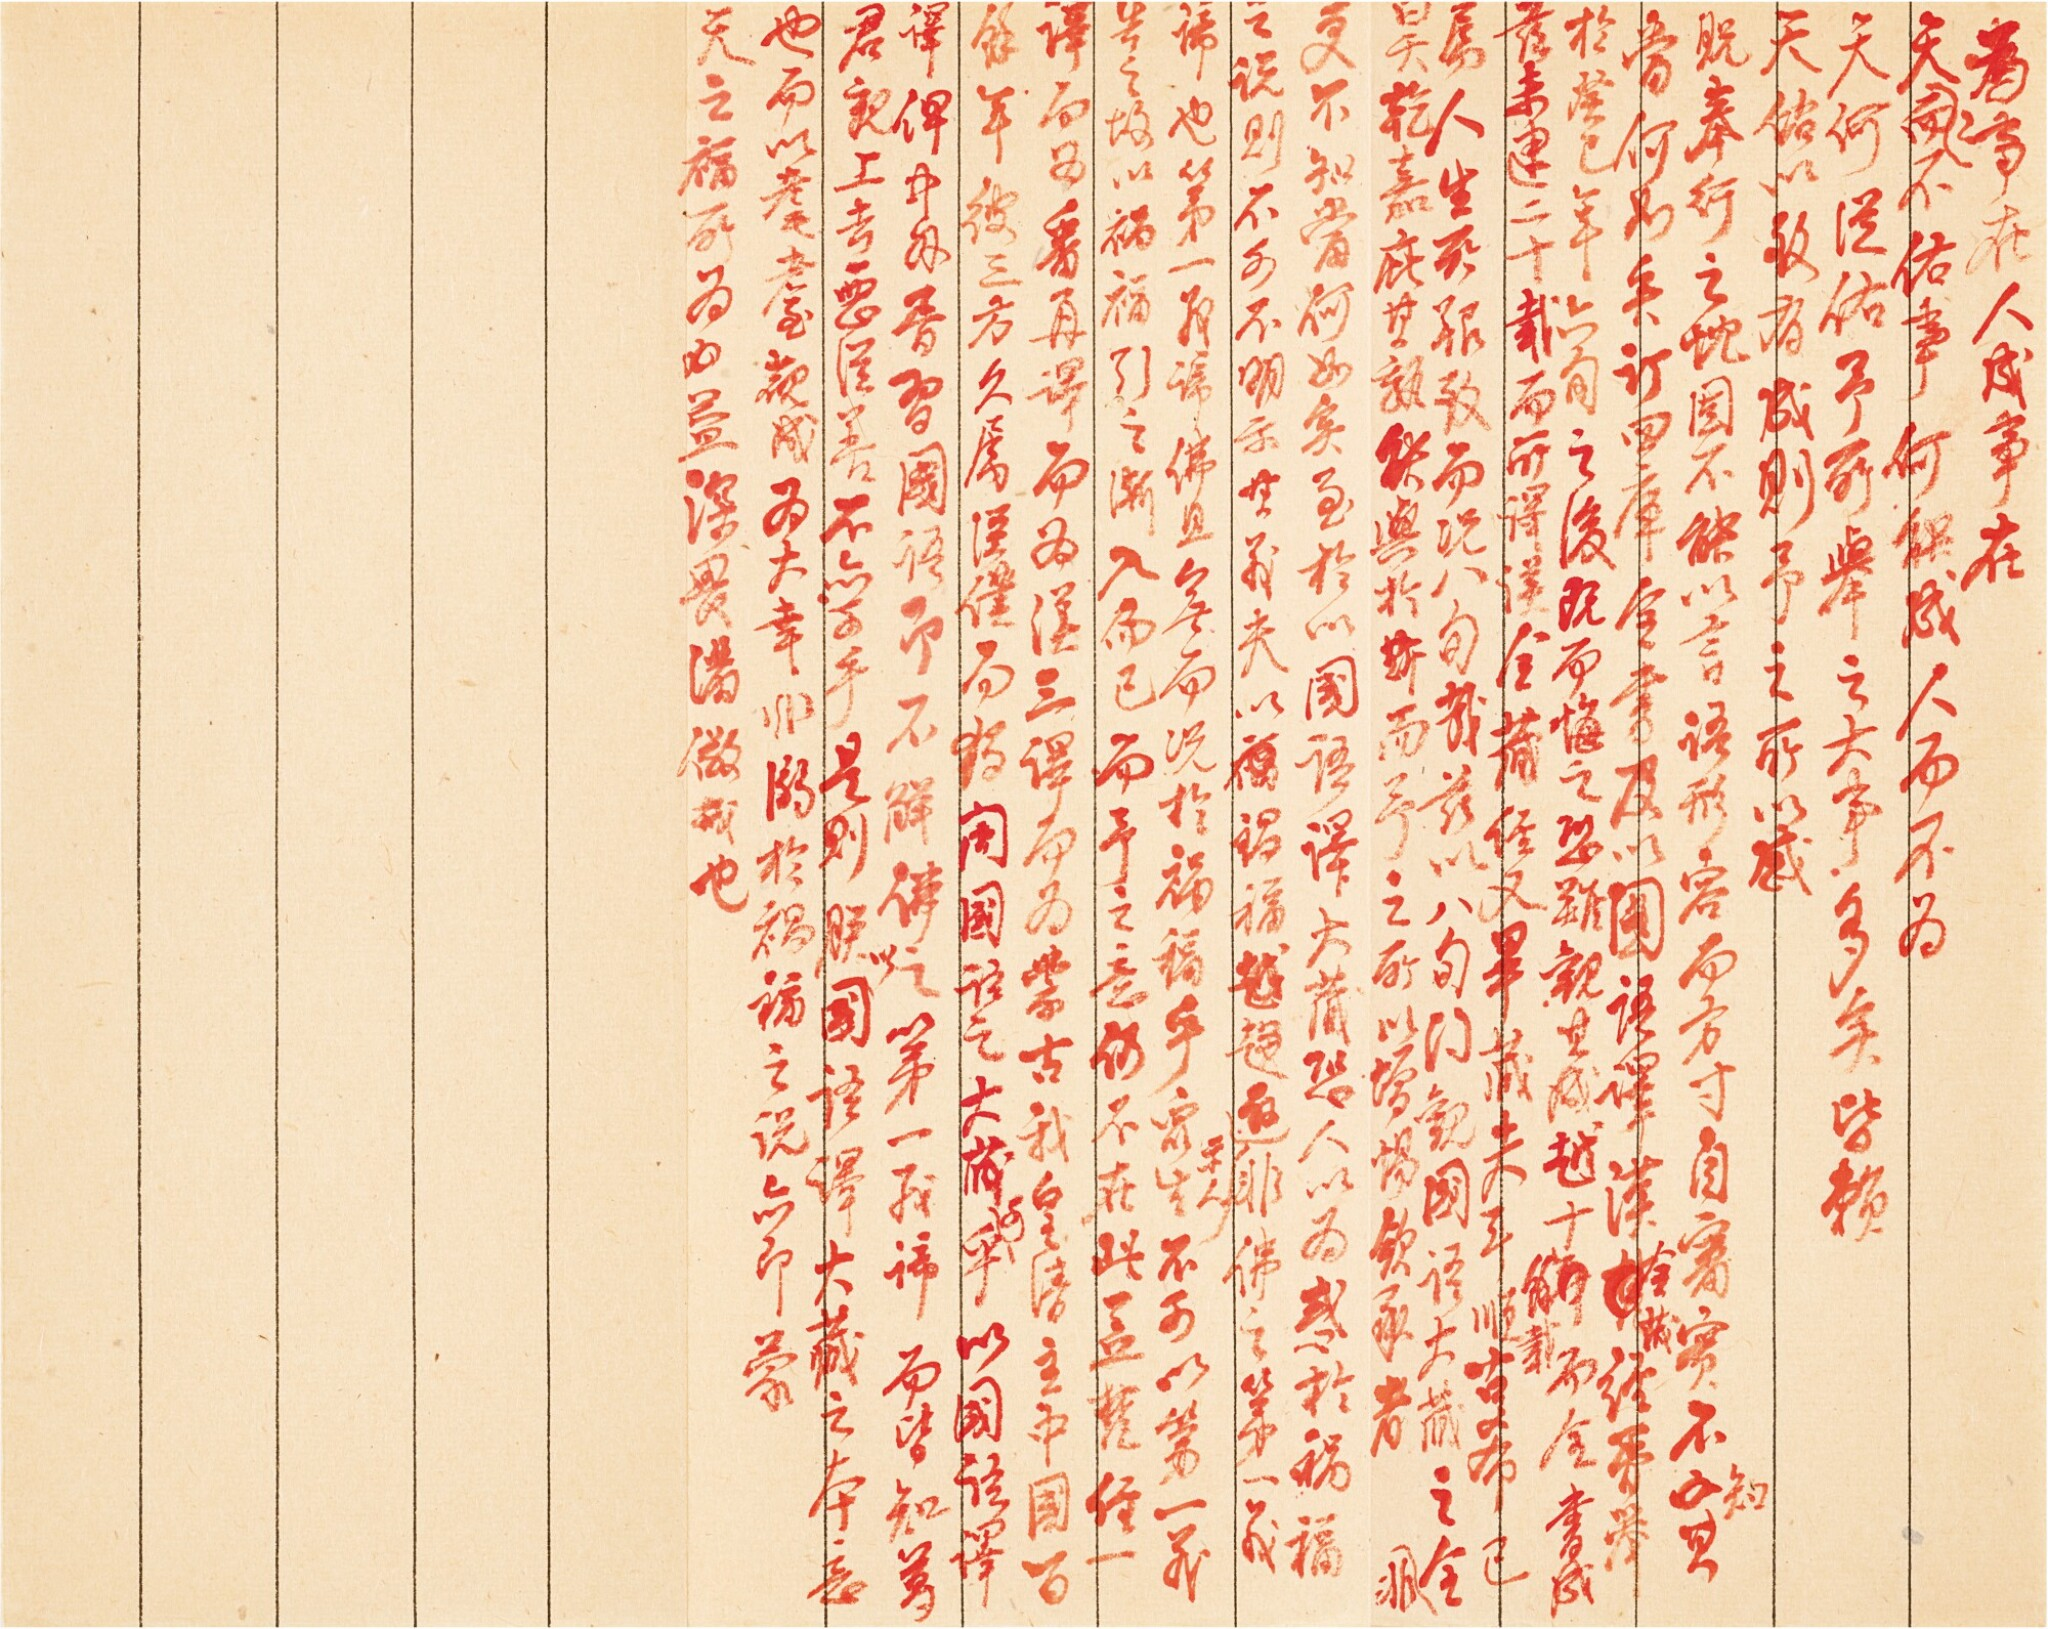 View full screen - View 1 of Lot 3118. Hongli (Emperor Qianlong) 1711-1799 弘曆(乾隆帝) 1711-1799   First and Second Edit of the Preface of Sutra in Manchu 《清文繙譯全藏經序》初稿及二稿.